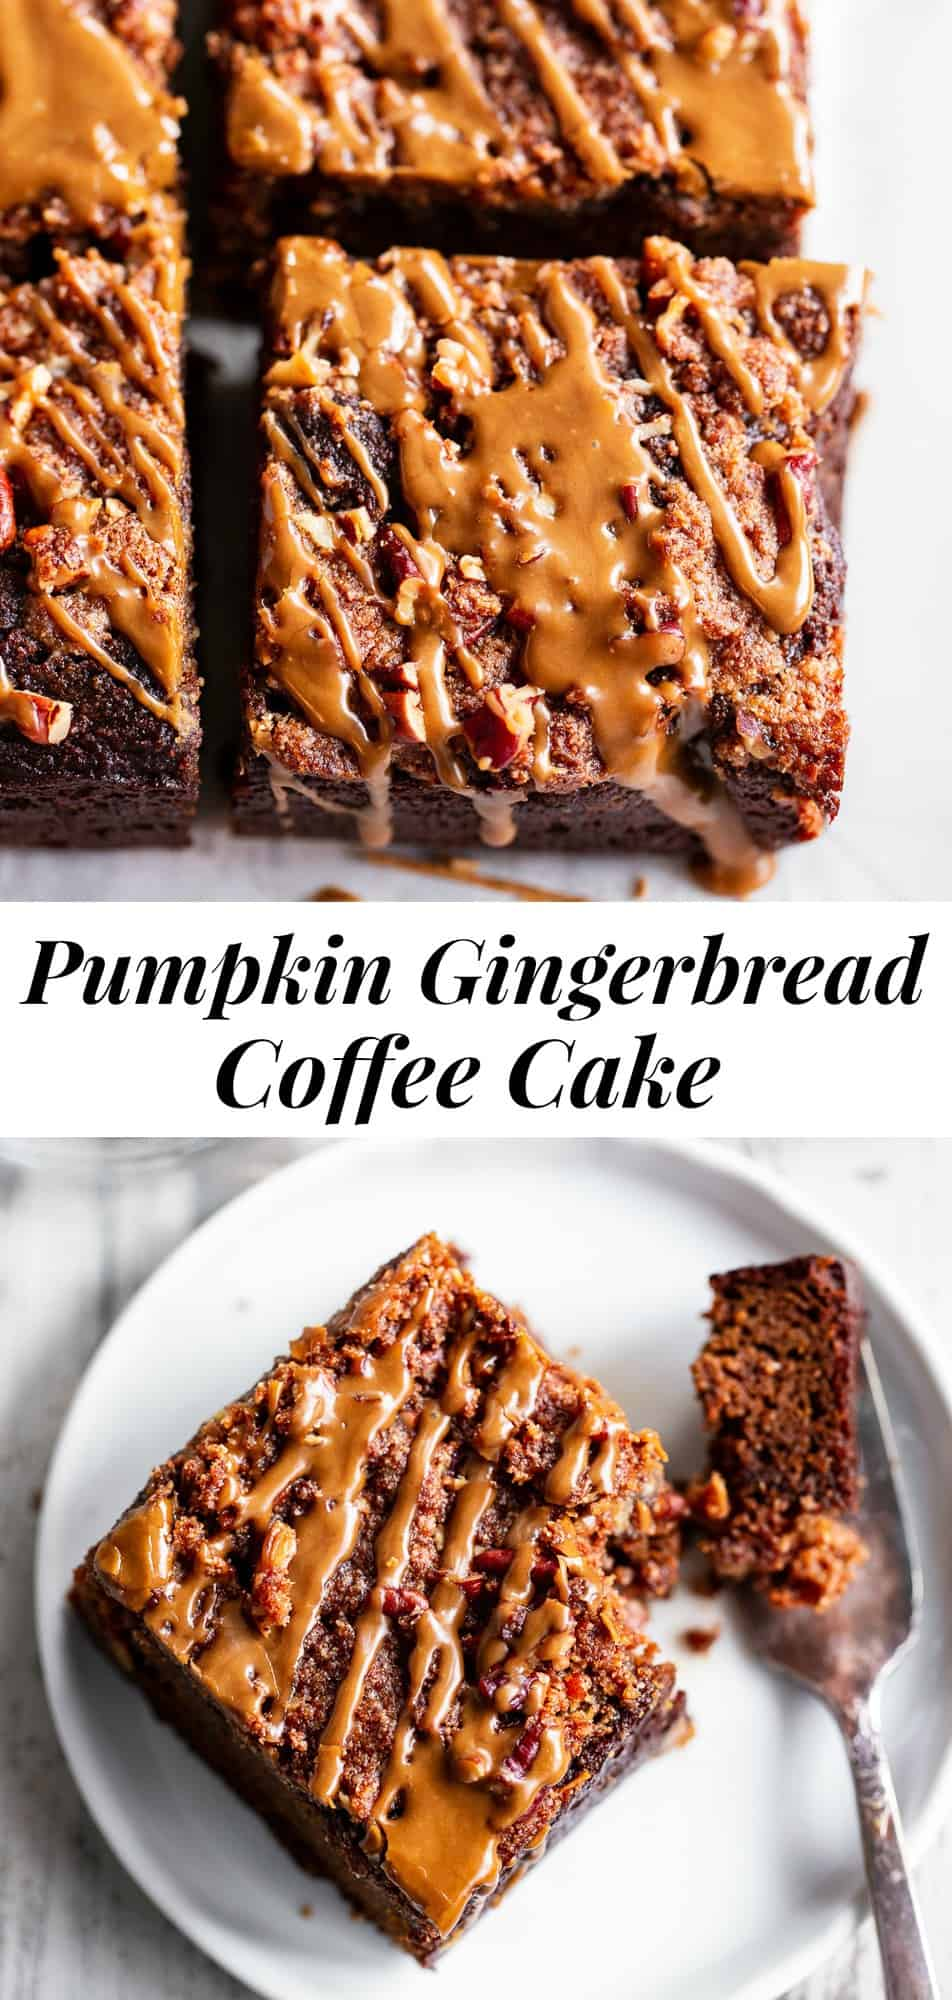 This Paleo Pumpkin Gingerbread Coffee Cake has it all! Moist cake with sweet warm pumpkin spices and molasses topped with an addicting crumb topping and gingerbread icing! Fancy enough to serve to guests but so delicious that you'll want to have some to snack on all season long. #paleo #glutenfree #healthybaking #gingerbread #coffeecake #cleaneating